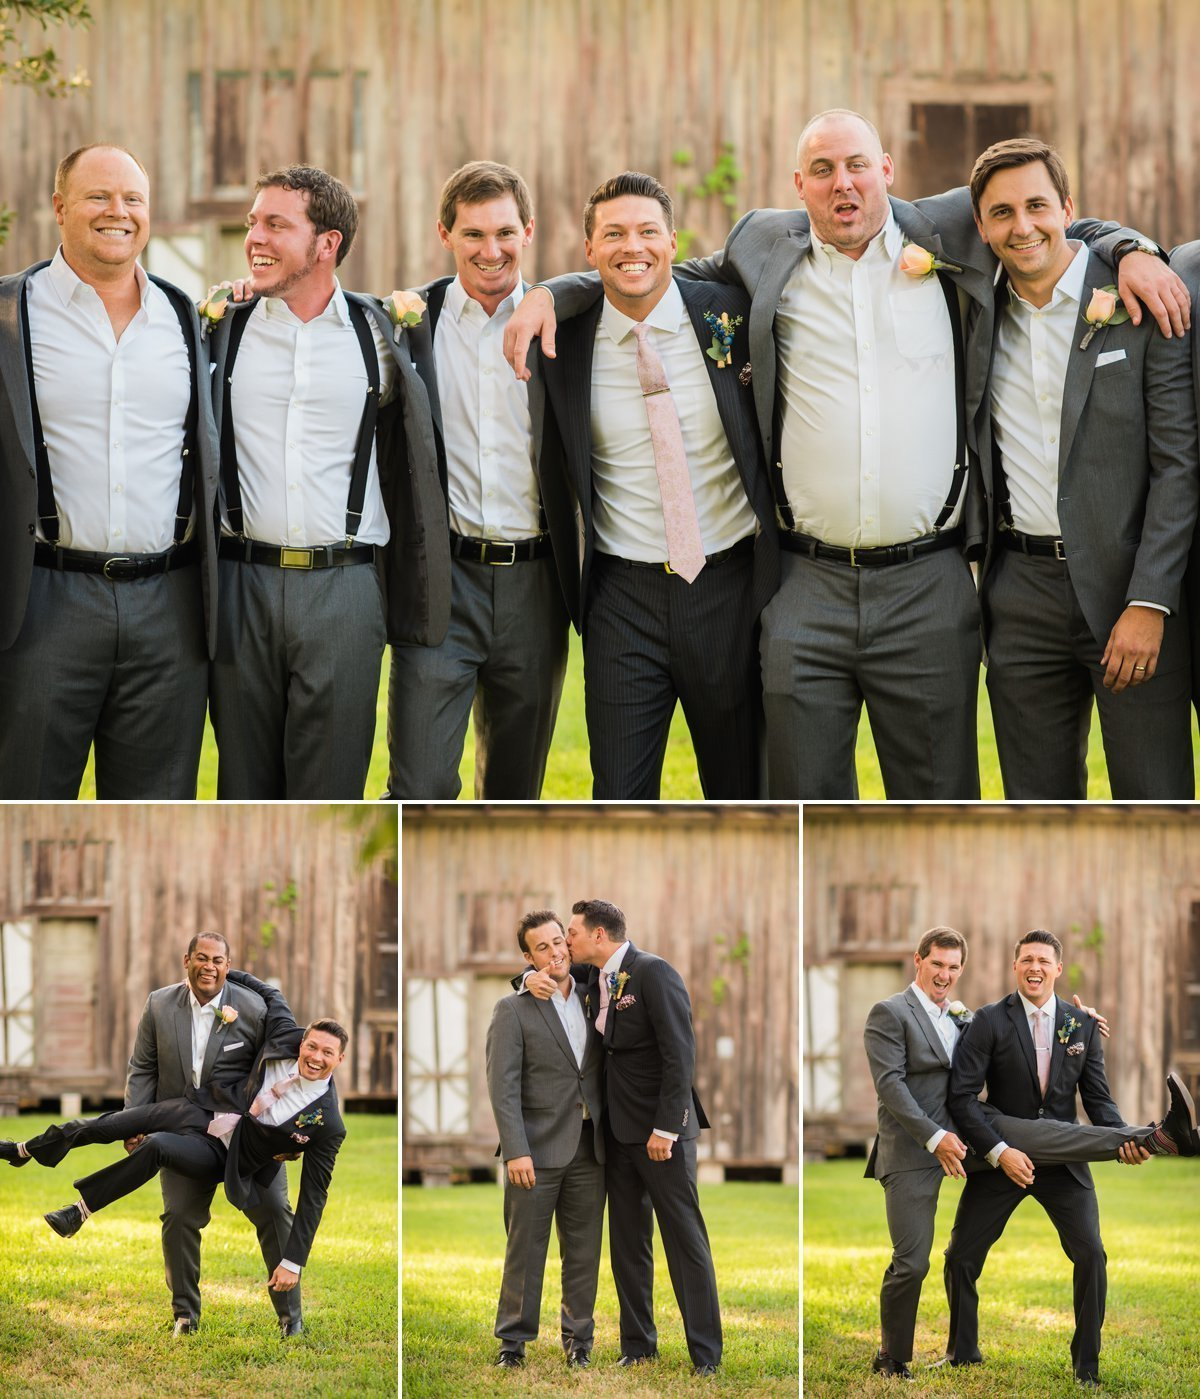 Groom and Groomsmen Pictures at Butler's Courtyard